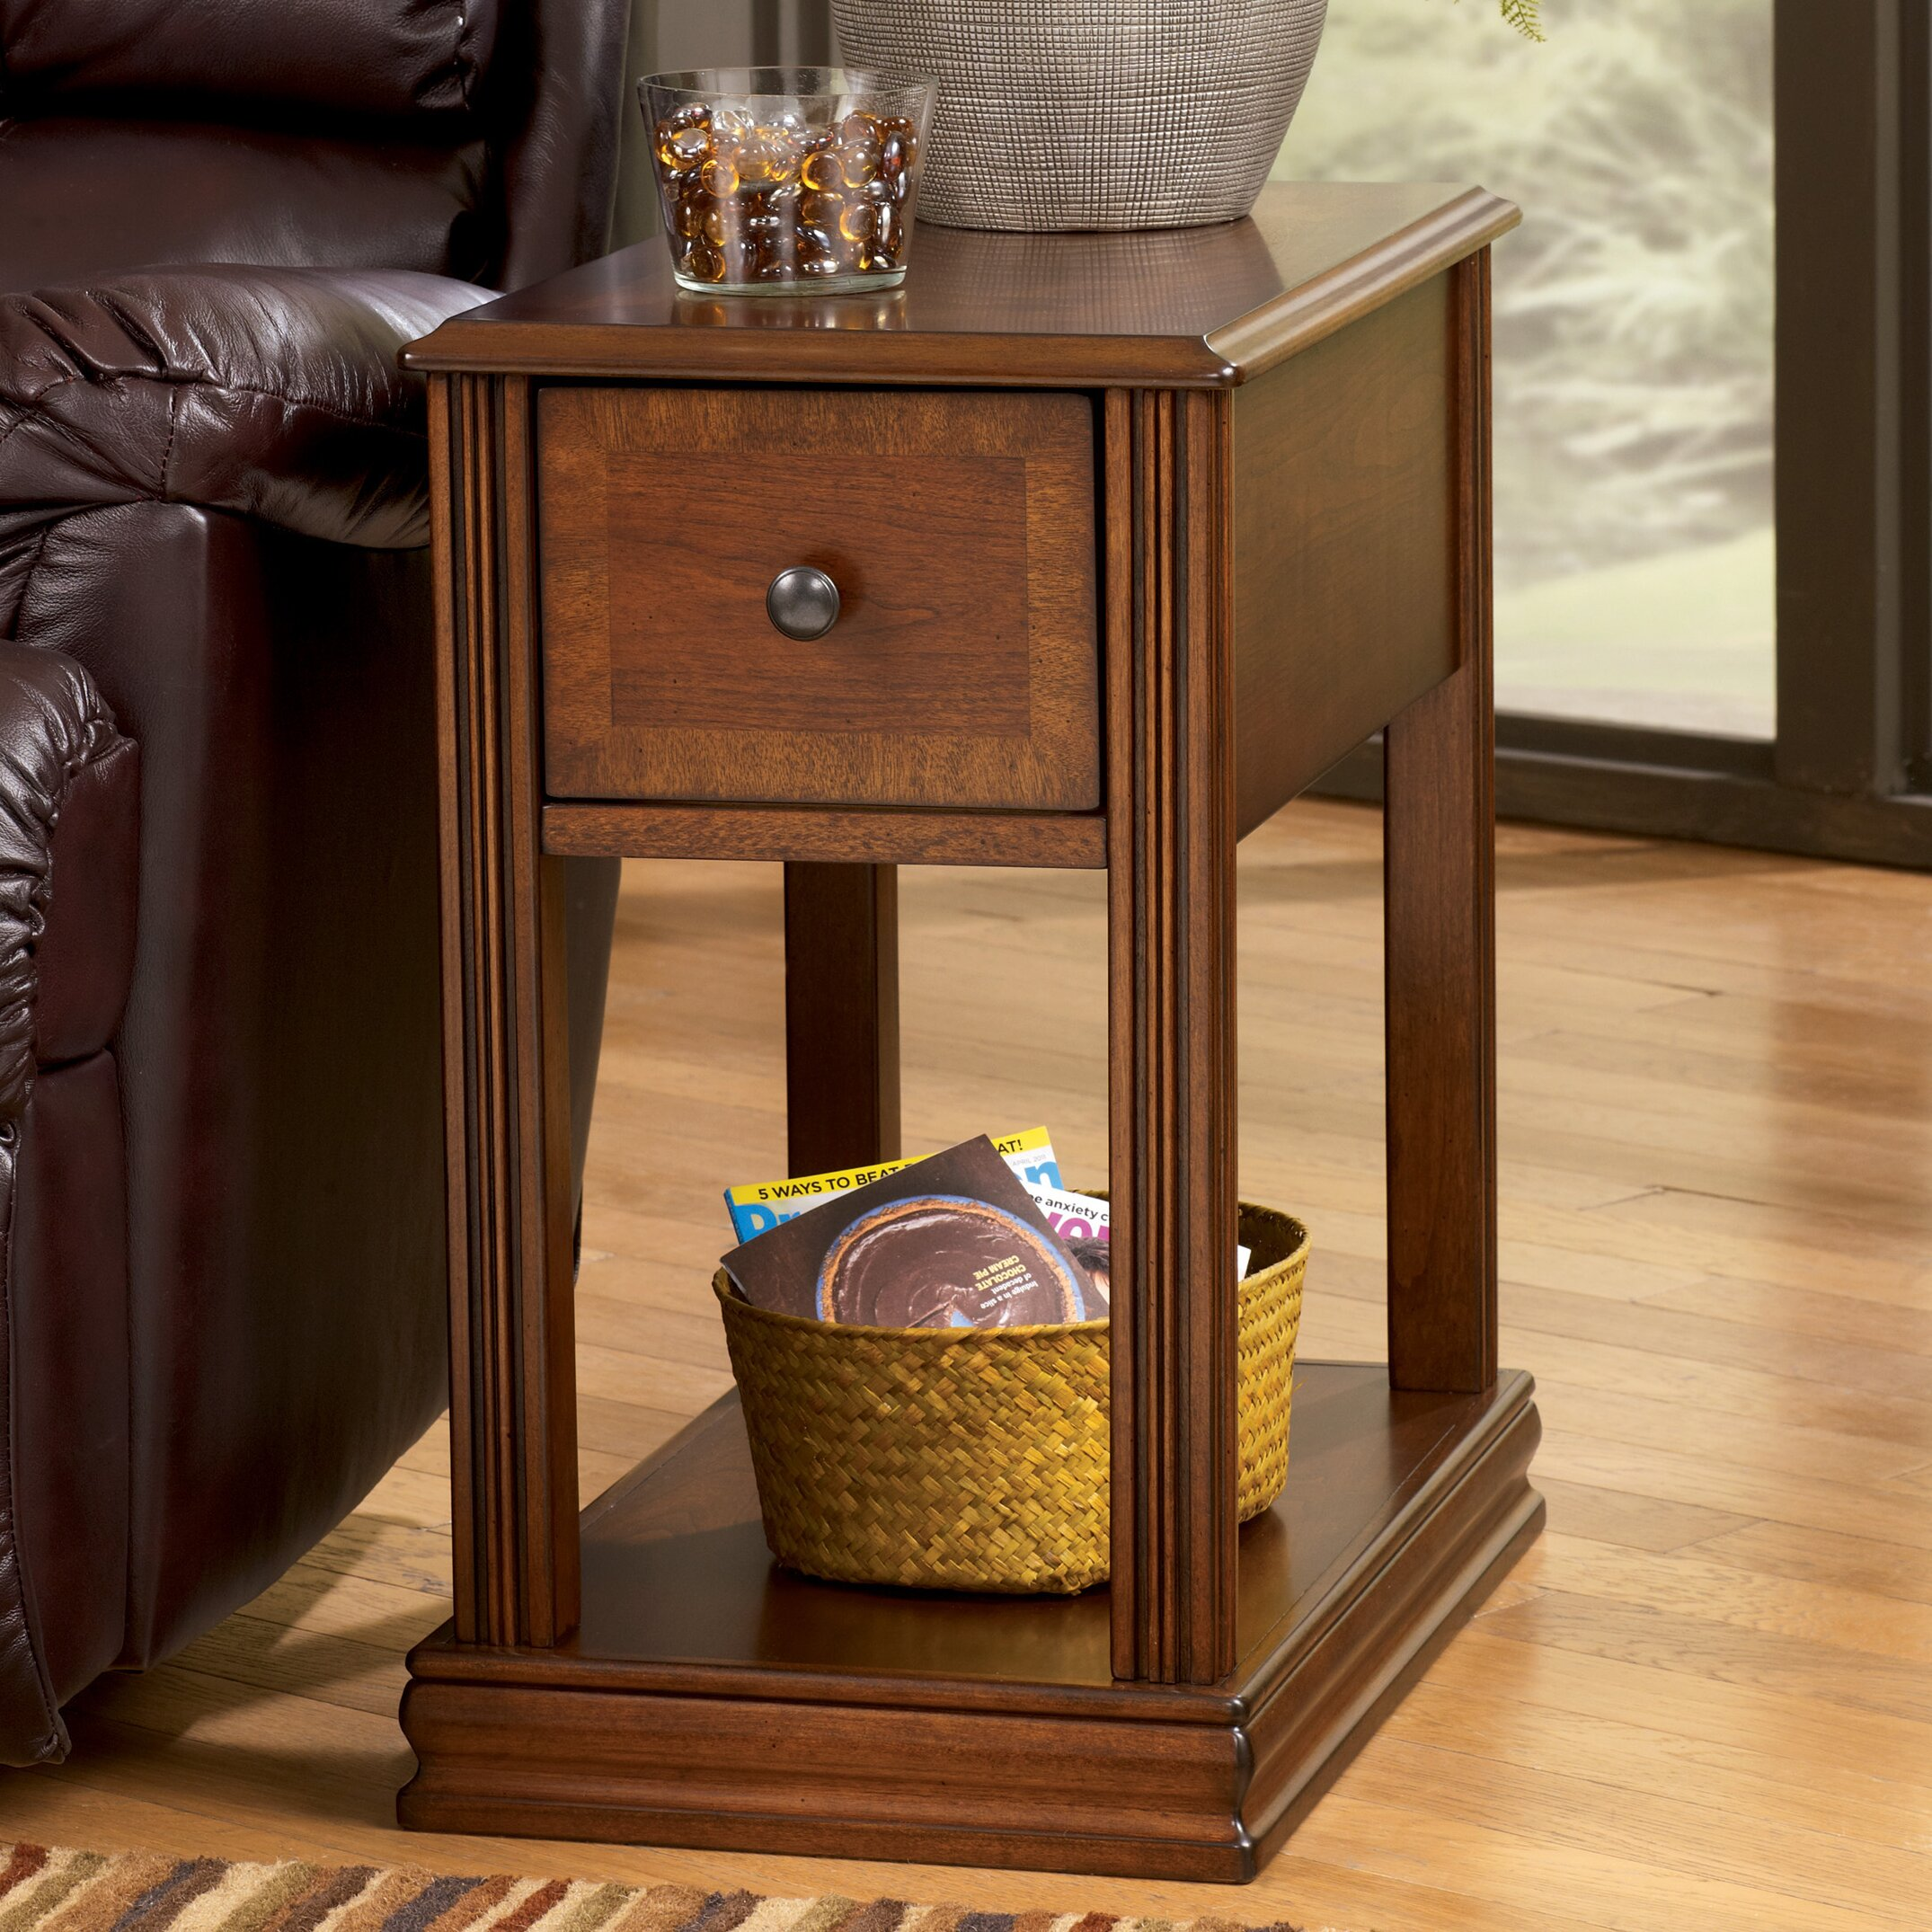 Darby home co busse chairside table reviews wayfair for Furniture and home decor hamilton county